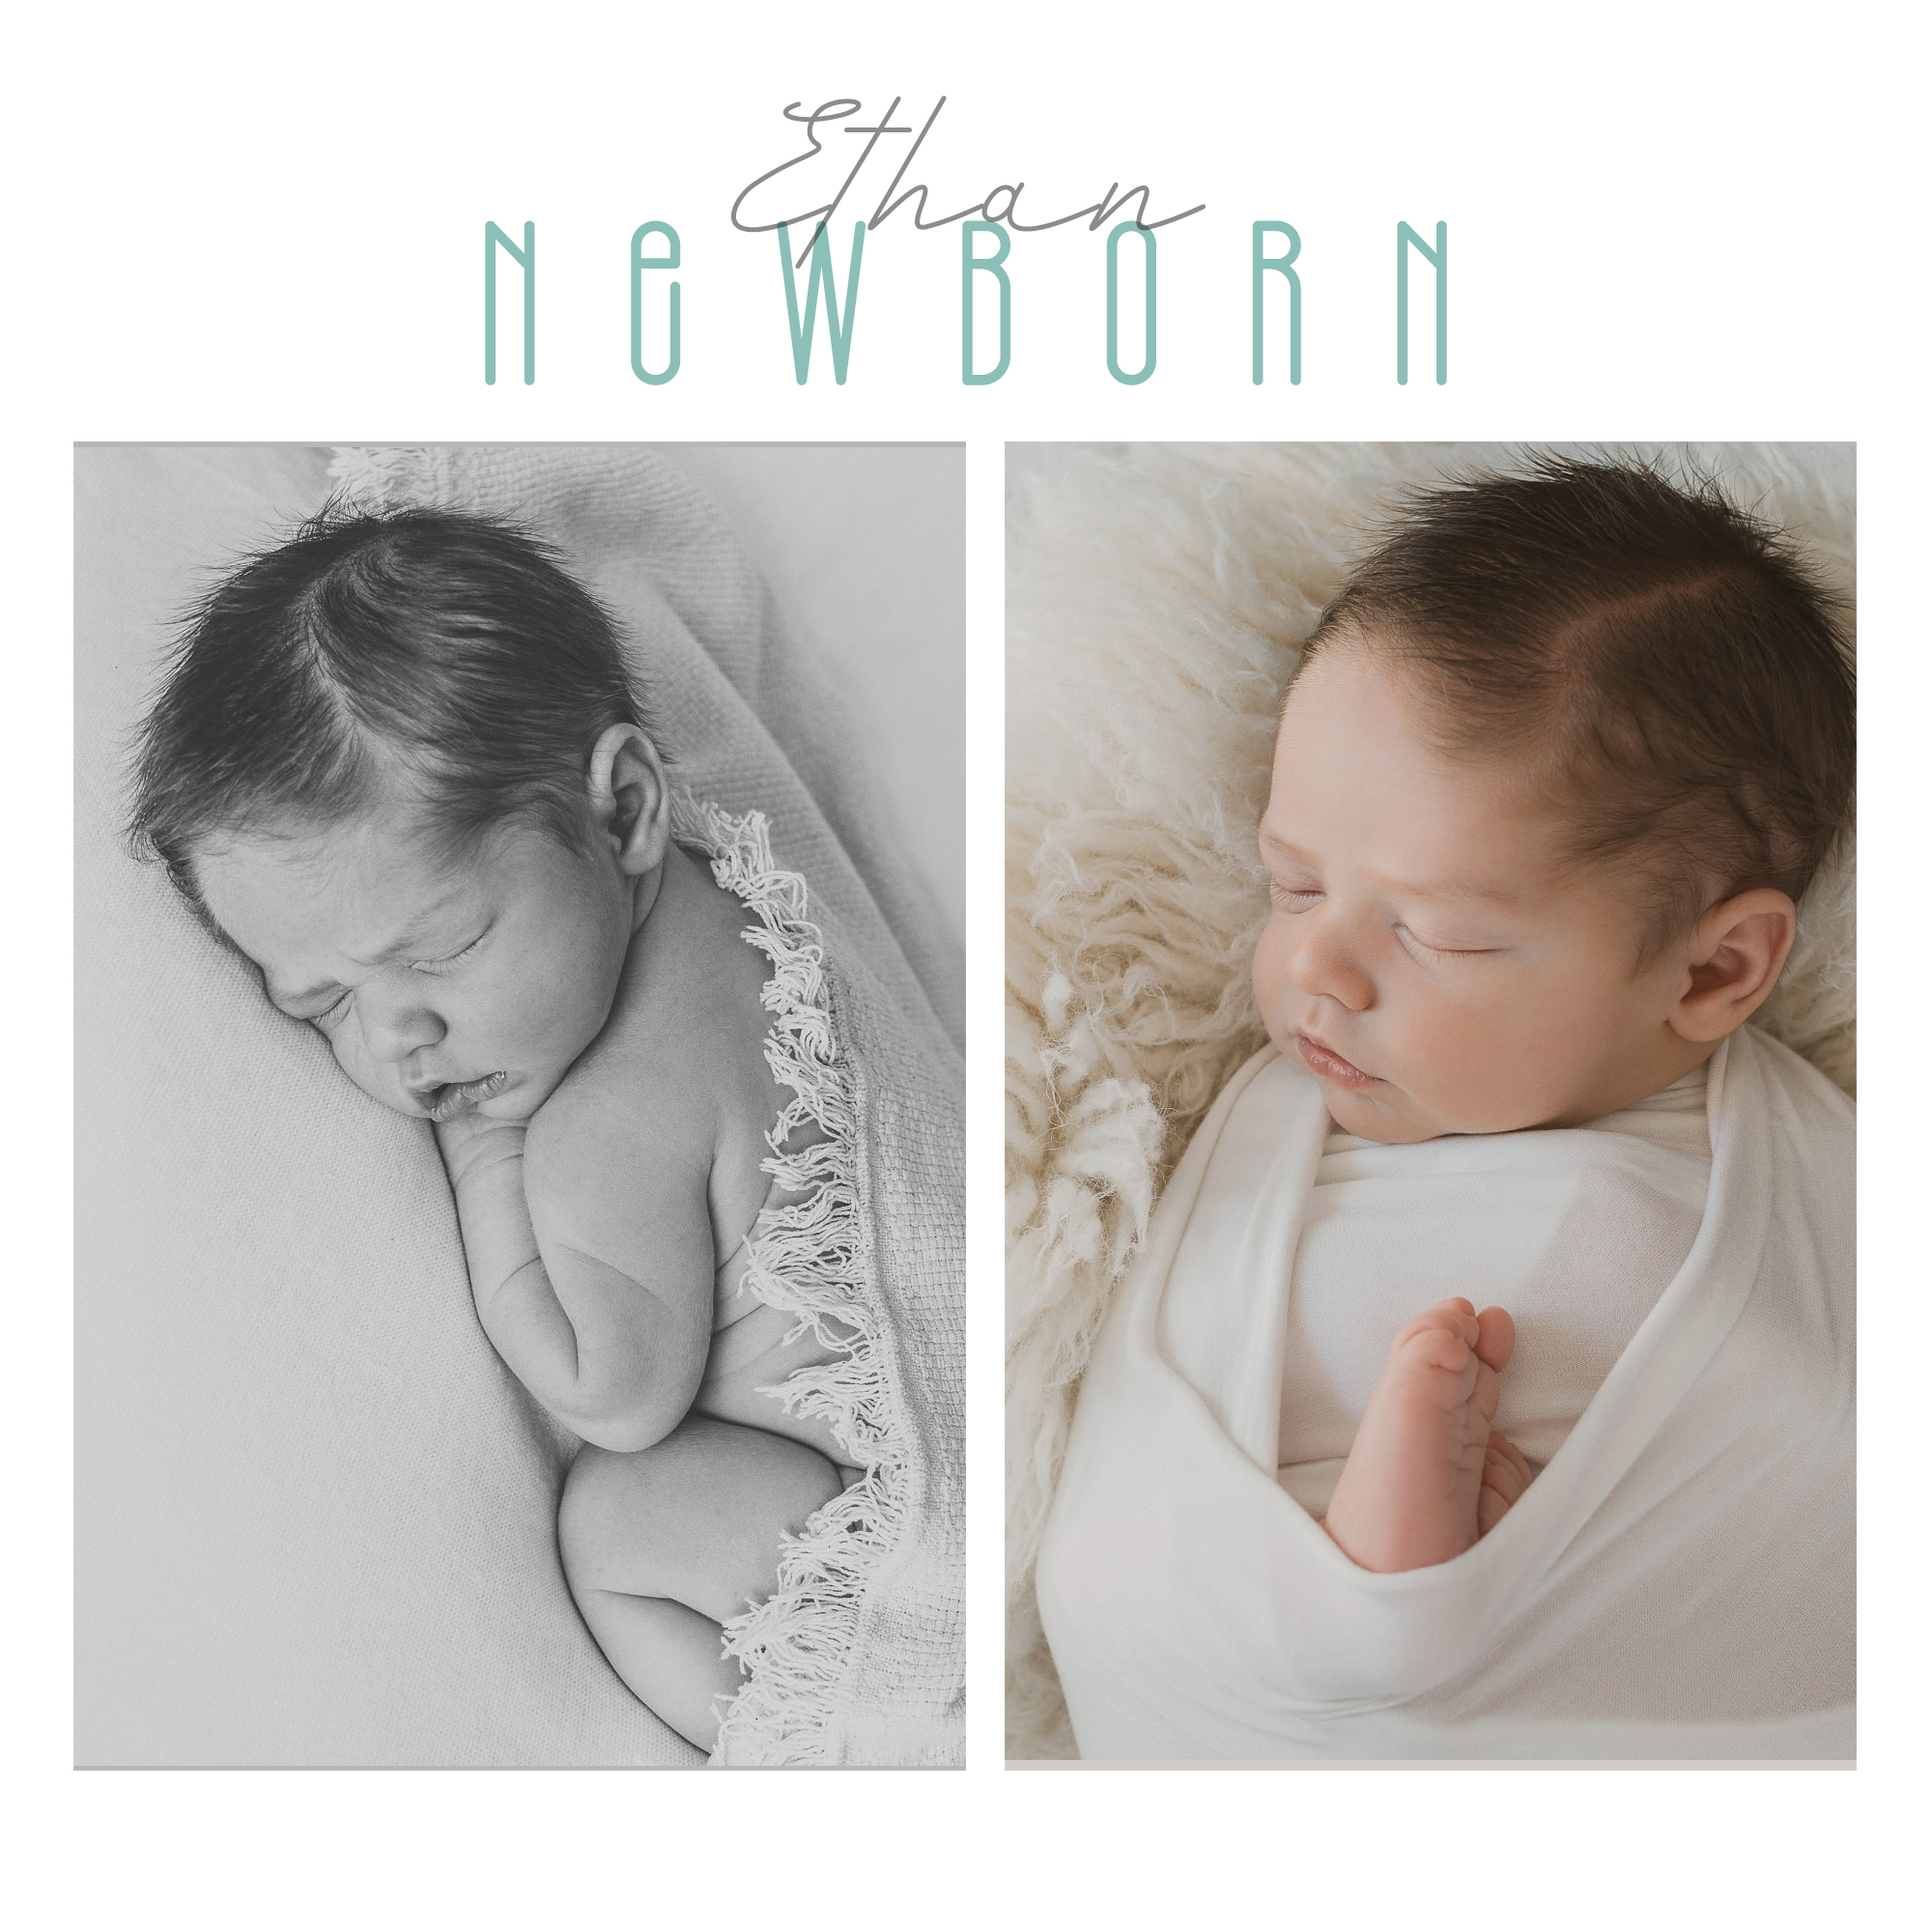 moodboard ethan newborn mala moon photo.jpg